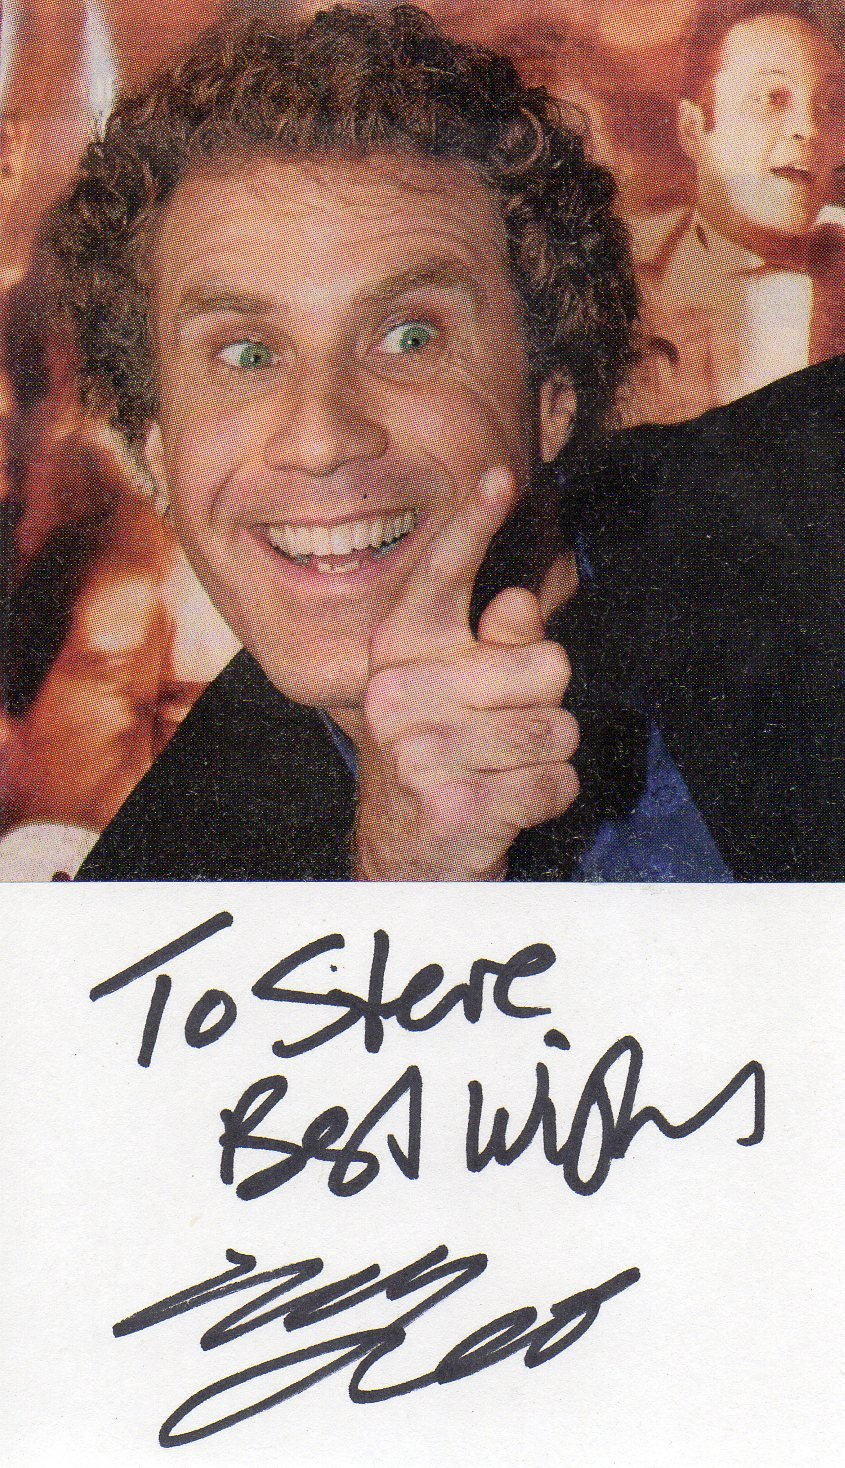 Will Ferrell hand signed 3x5 card